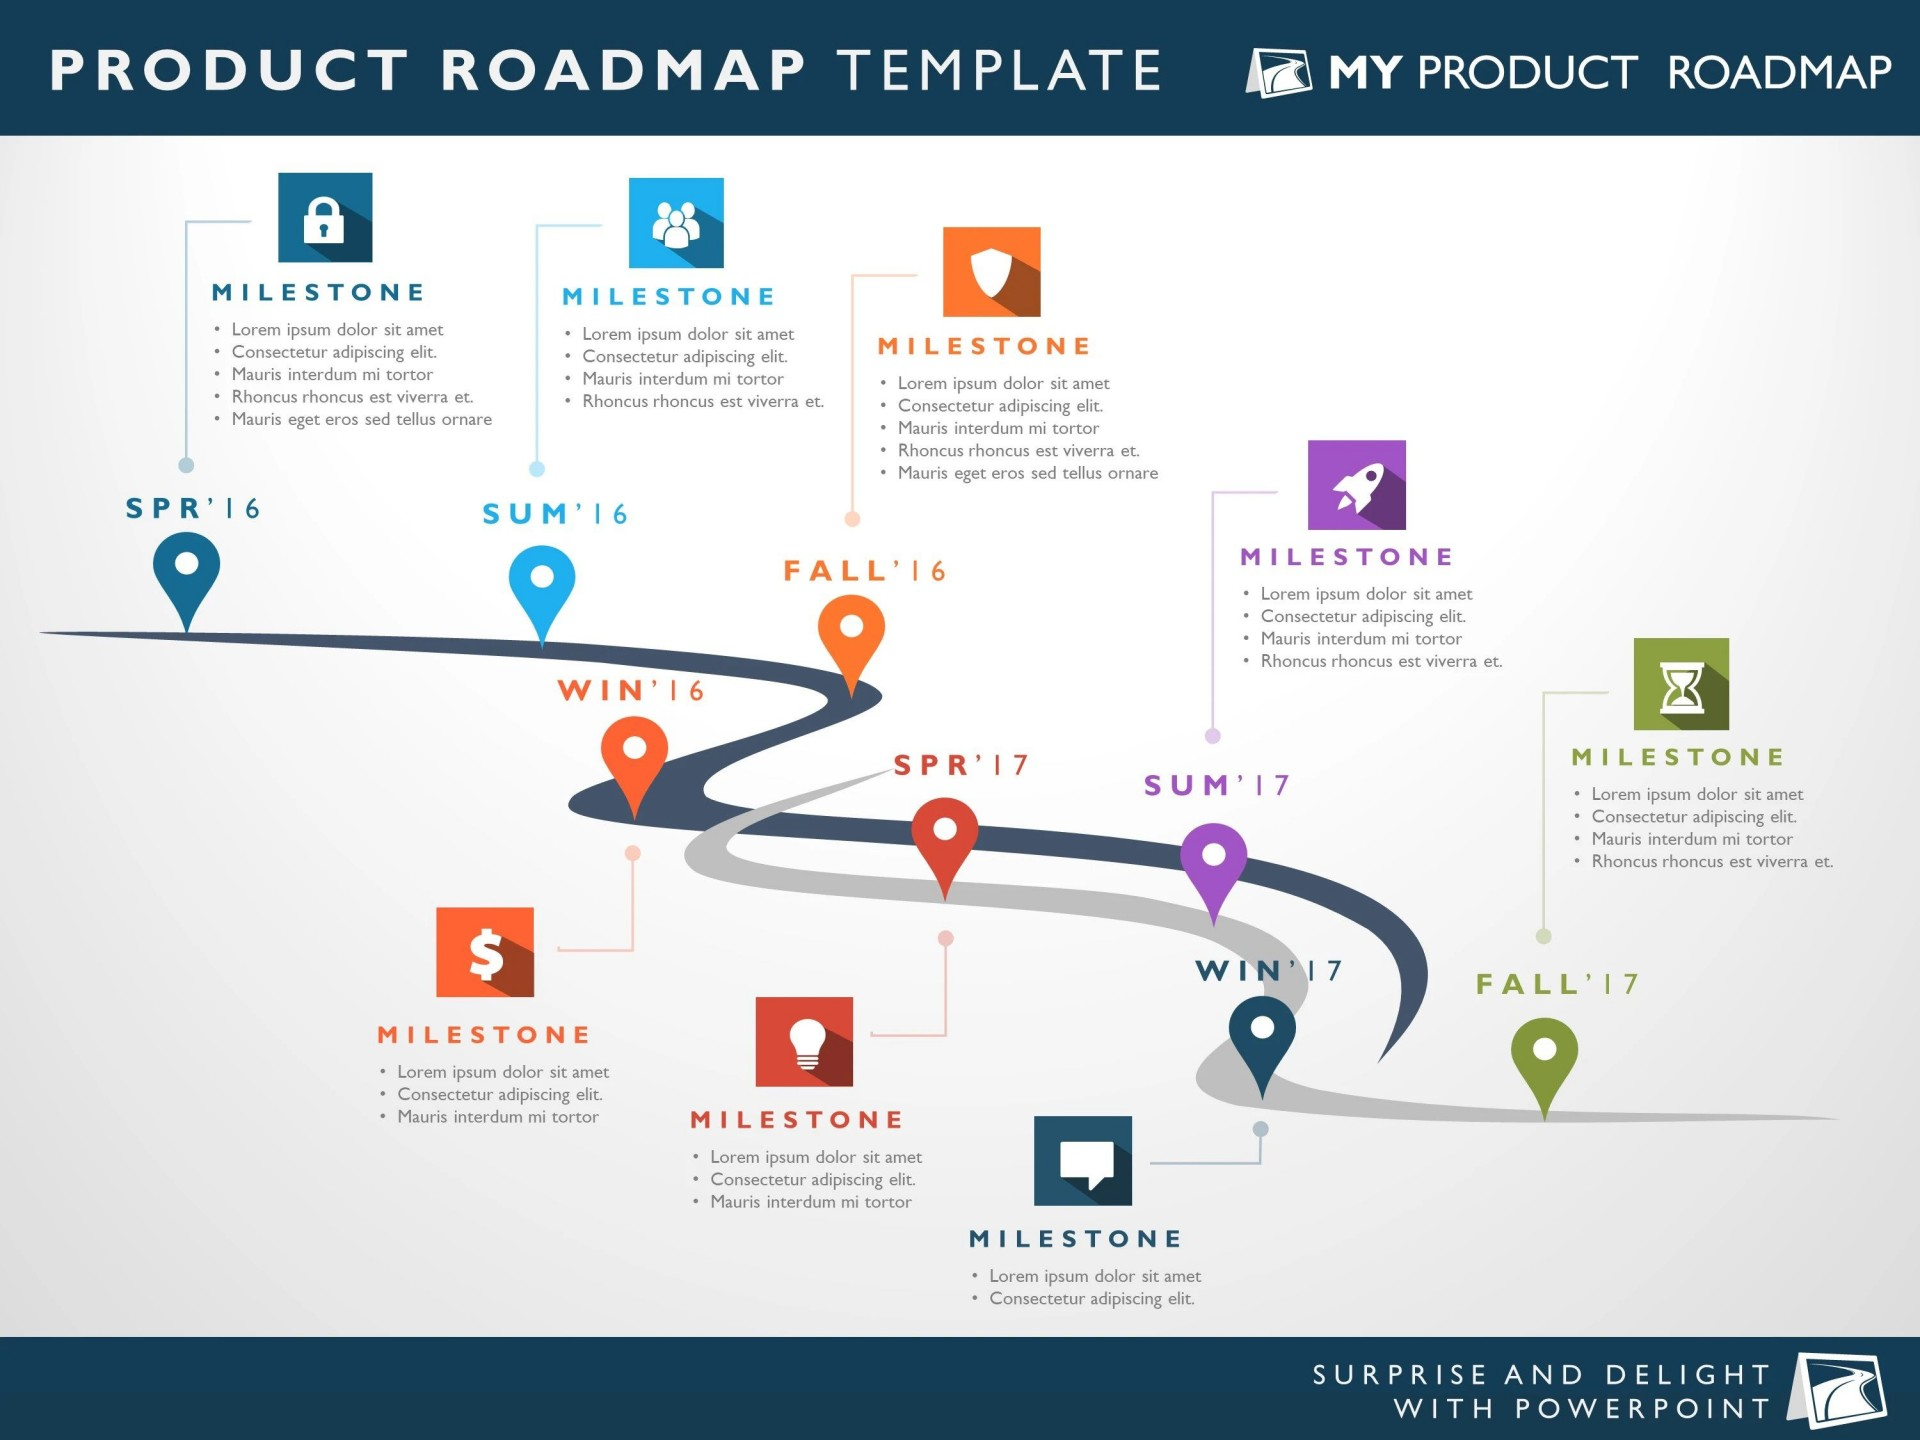 007 Top Road Map Template Powerpoint Highest Quality  Roadmap Ppt Free Download Product1920